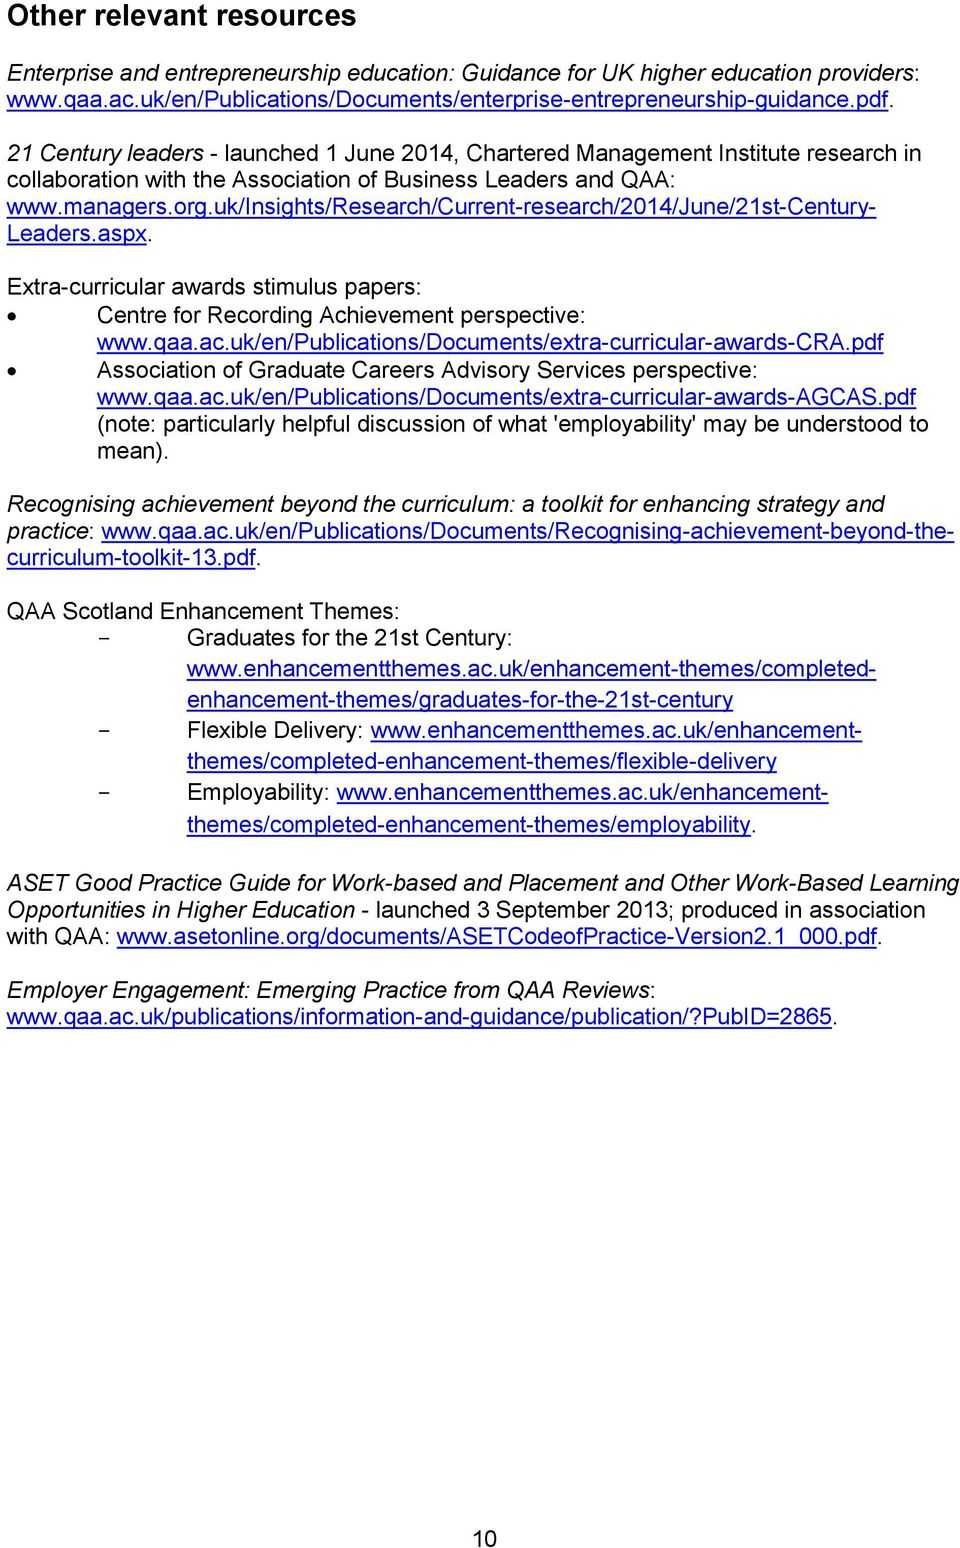 uk/insights/research/current-research/2014/june/21st-century- Leaders.aspx. Extra-curricular awards stimulus papers: Centre for Recording Achievement perspective: www.qaa.ac.